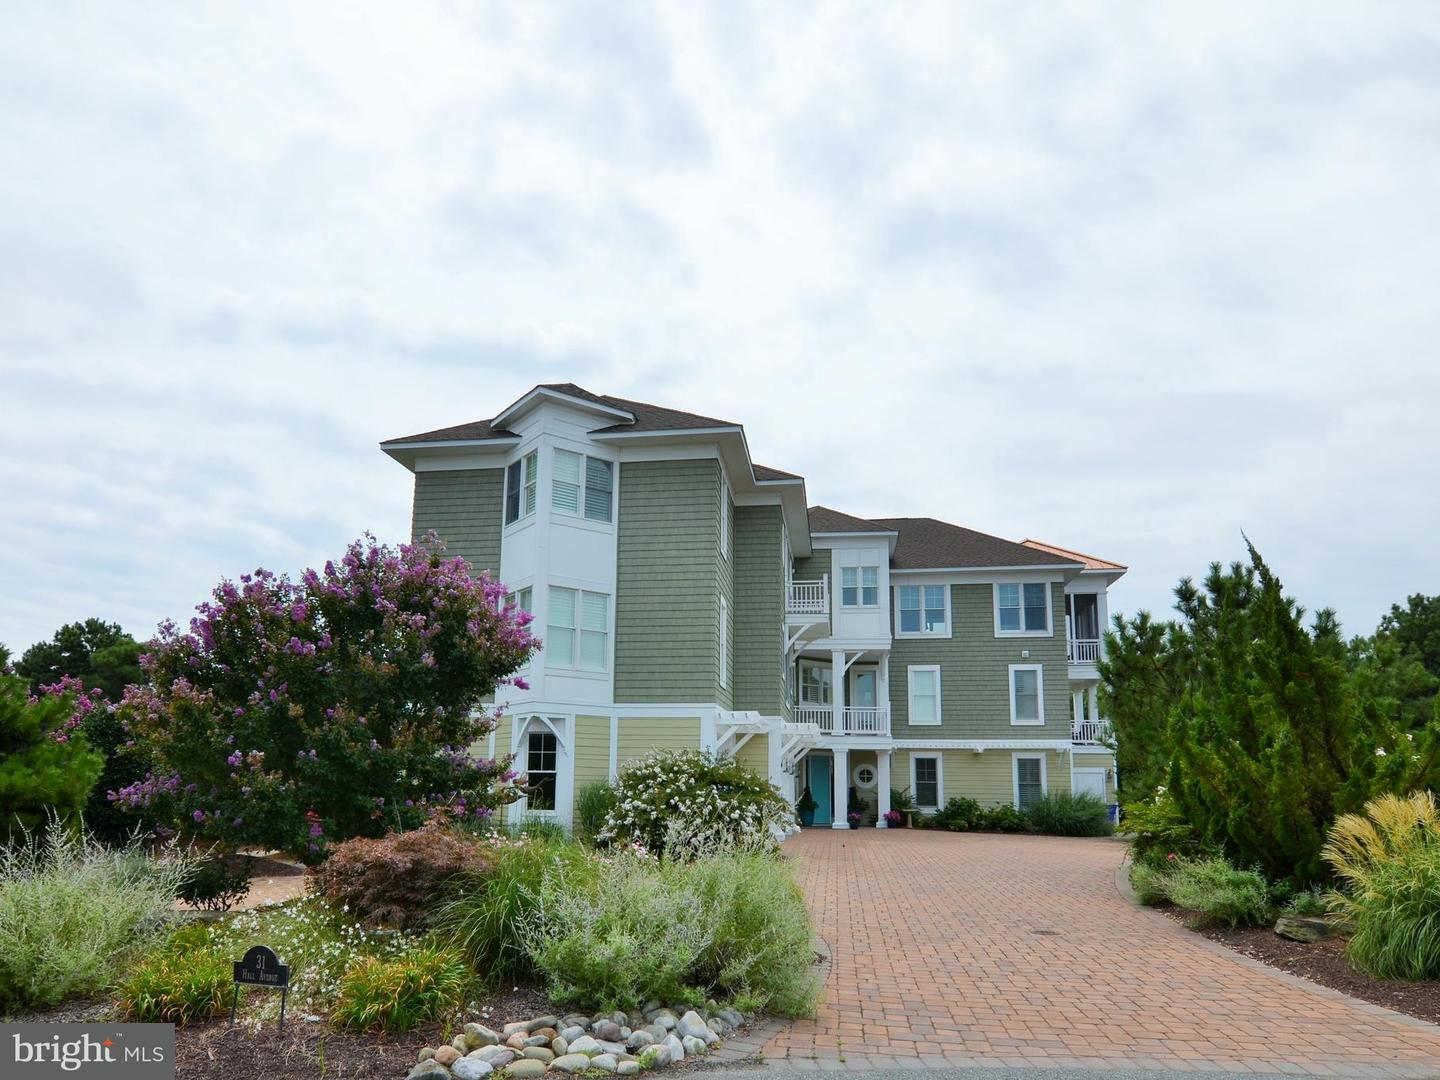 1002293530-300500804894-2018-09-25-15-08-24 31 Hall Ave | Rehoboth Beach, De Real Estate For Sale | MLS# 1002293530  - Suzanne Macnab